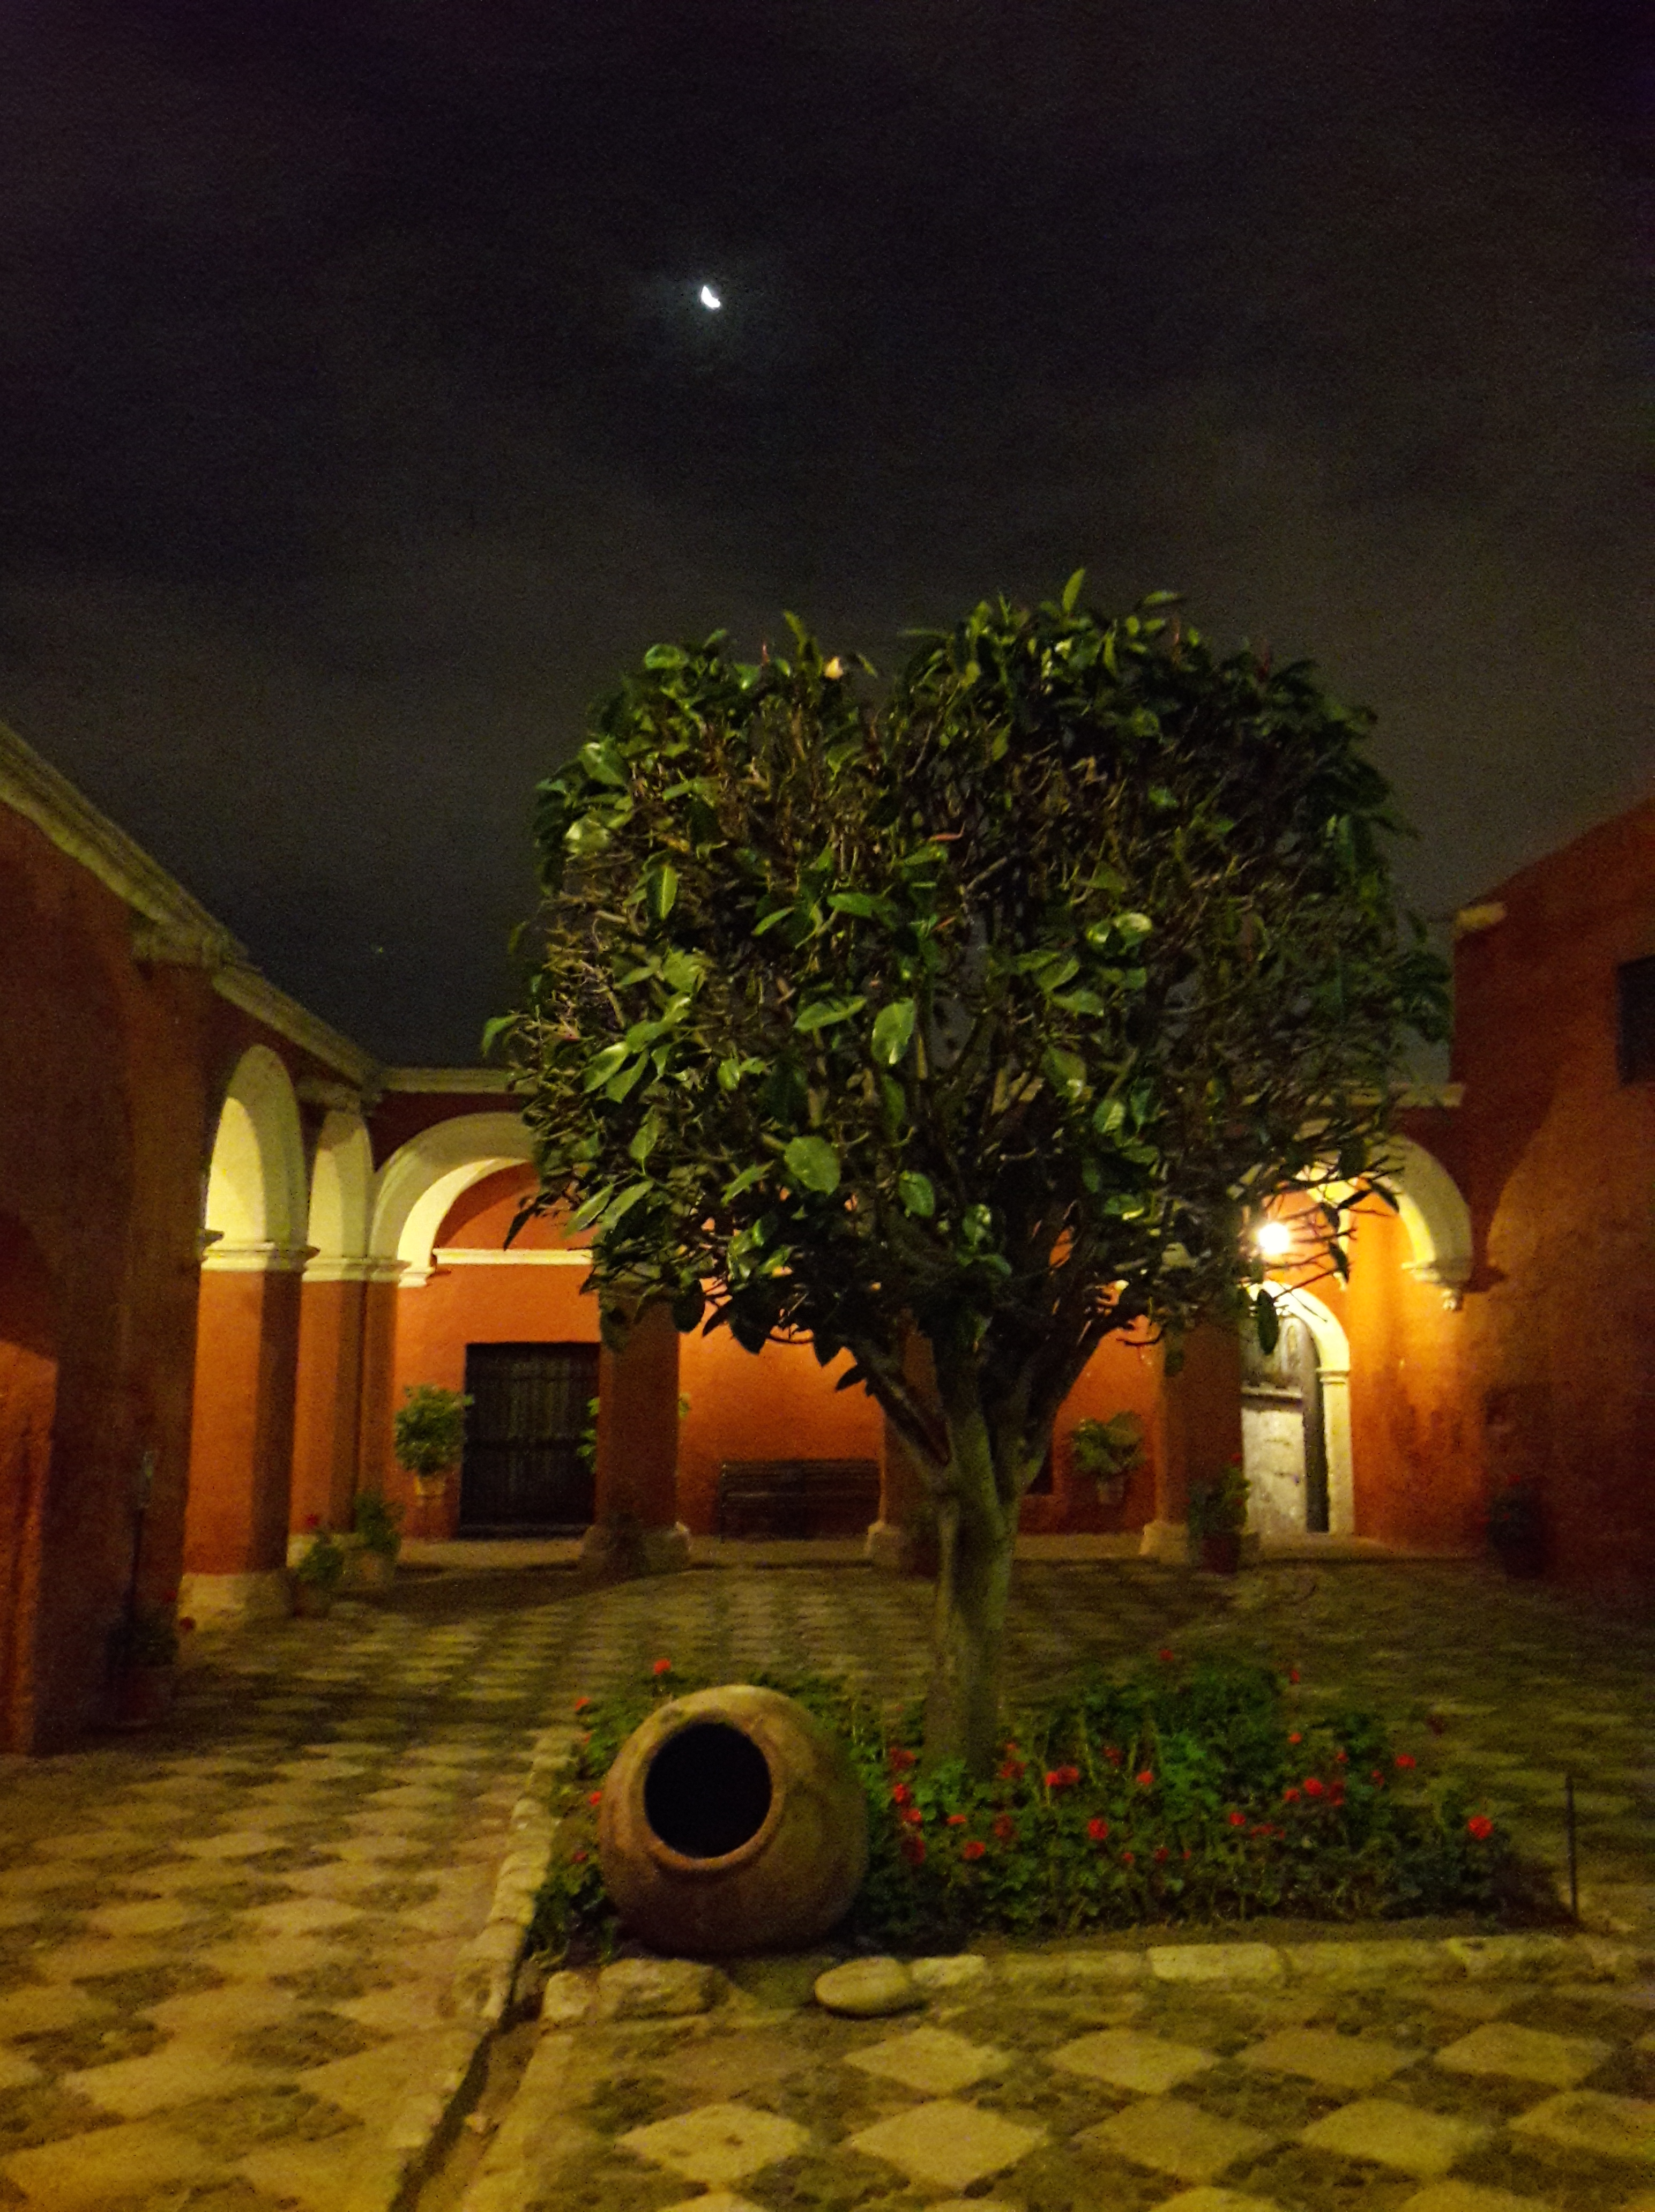 A tree. Arches in the background and a bright moon in the sky